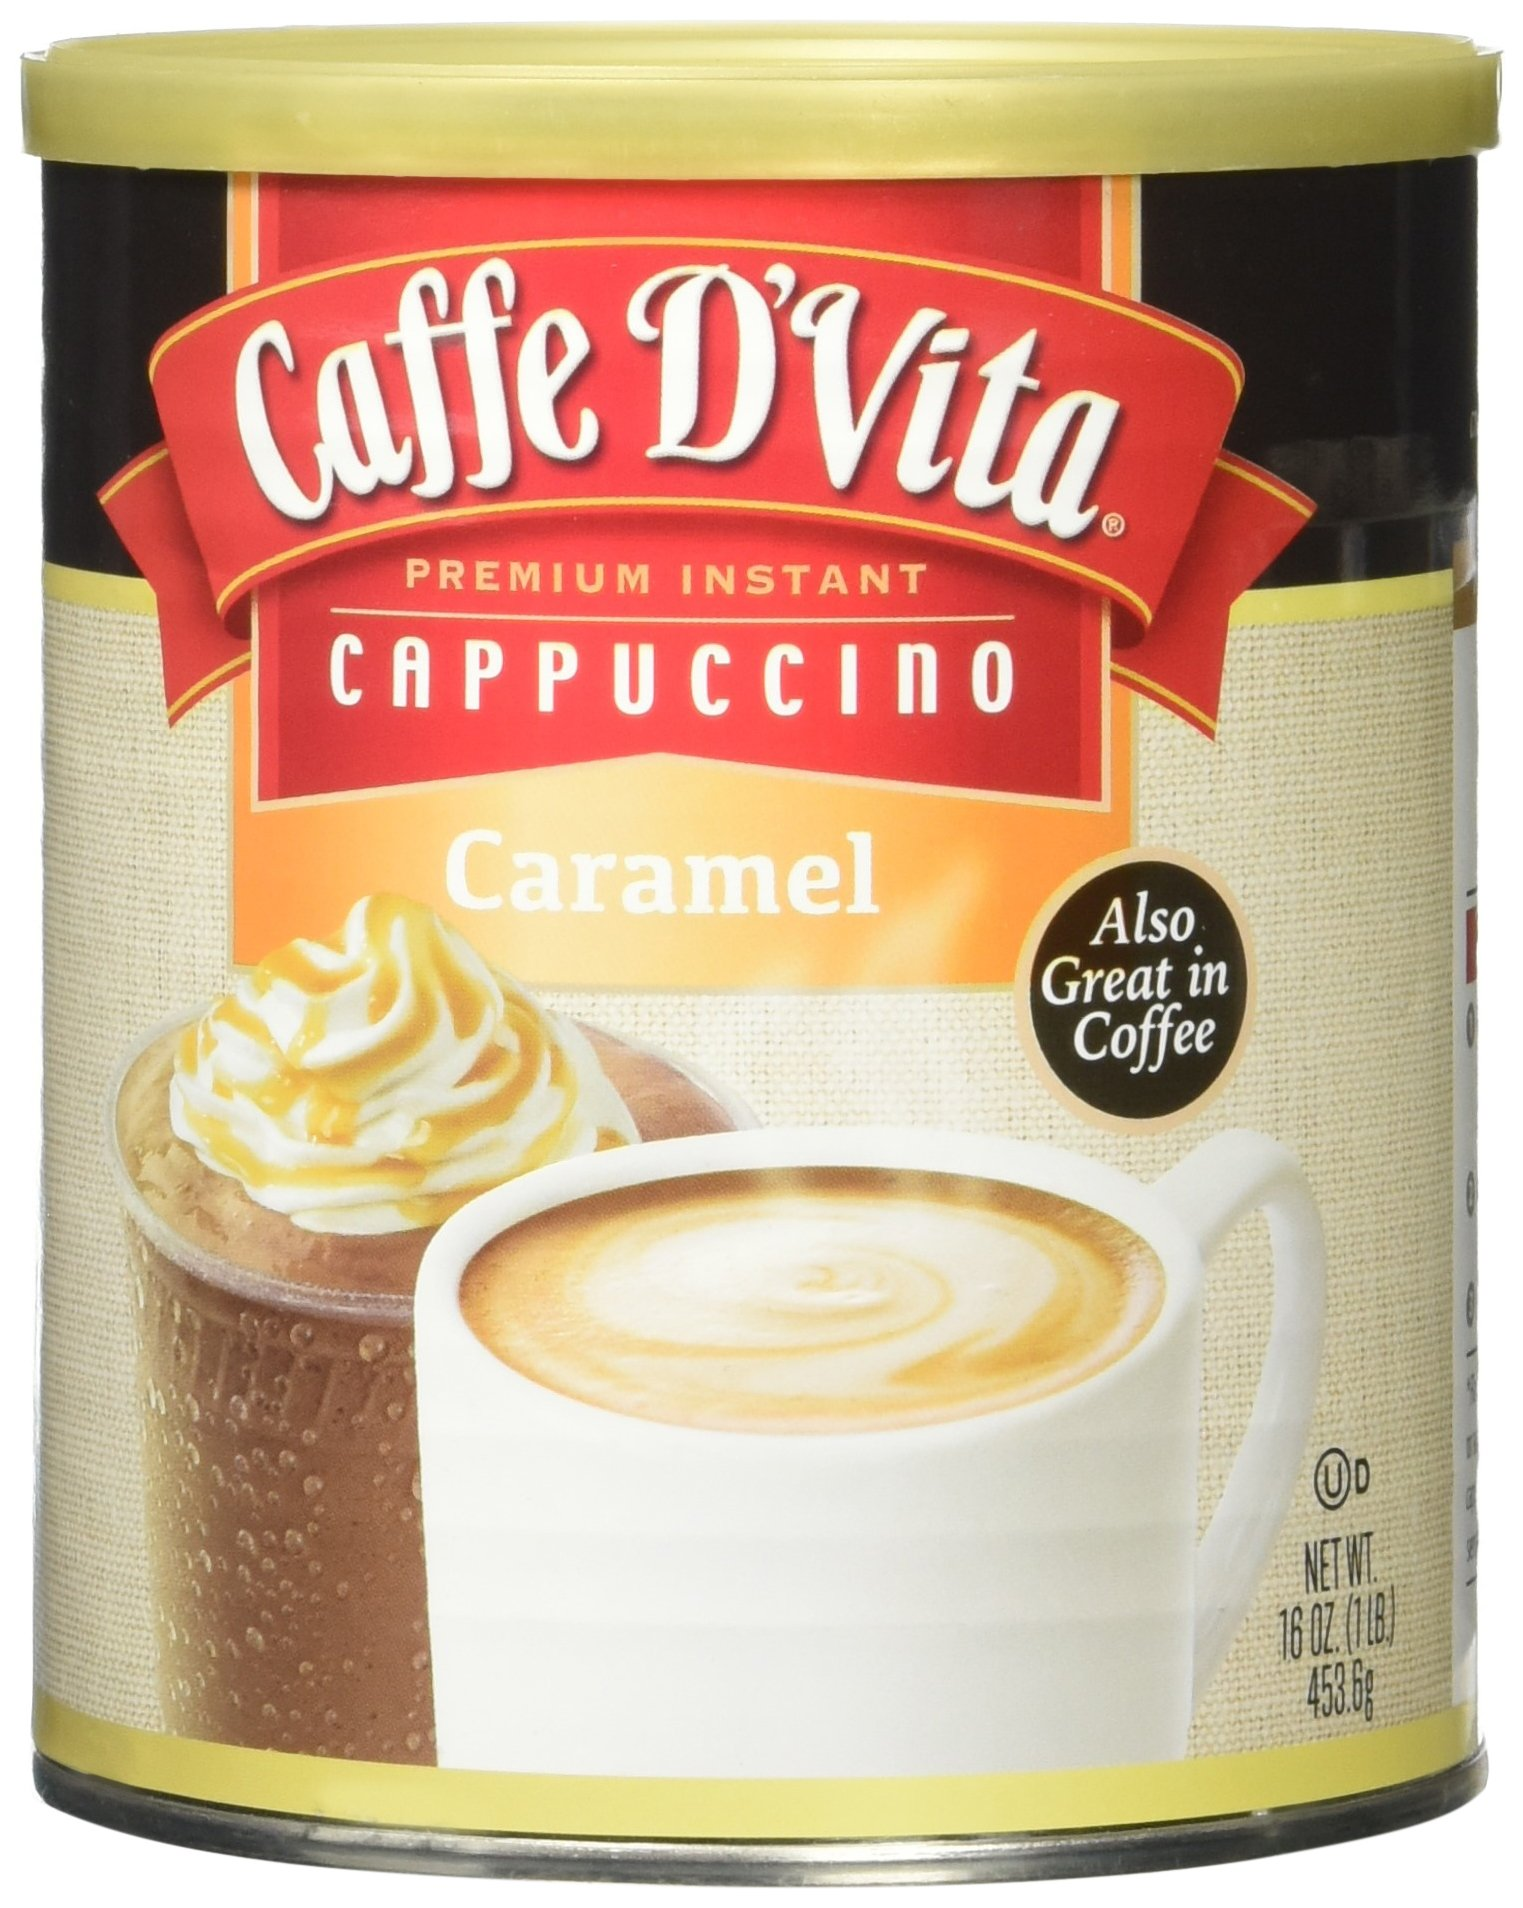 Caffe D'Vita Caramel Instant Cappuccino, 16-Ounce Canister